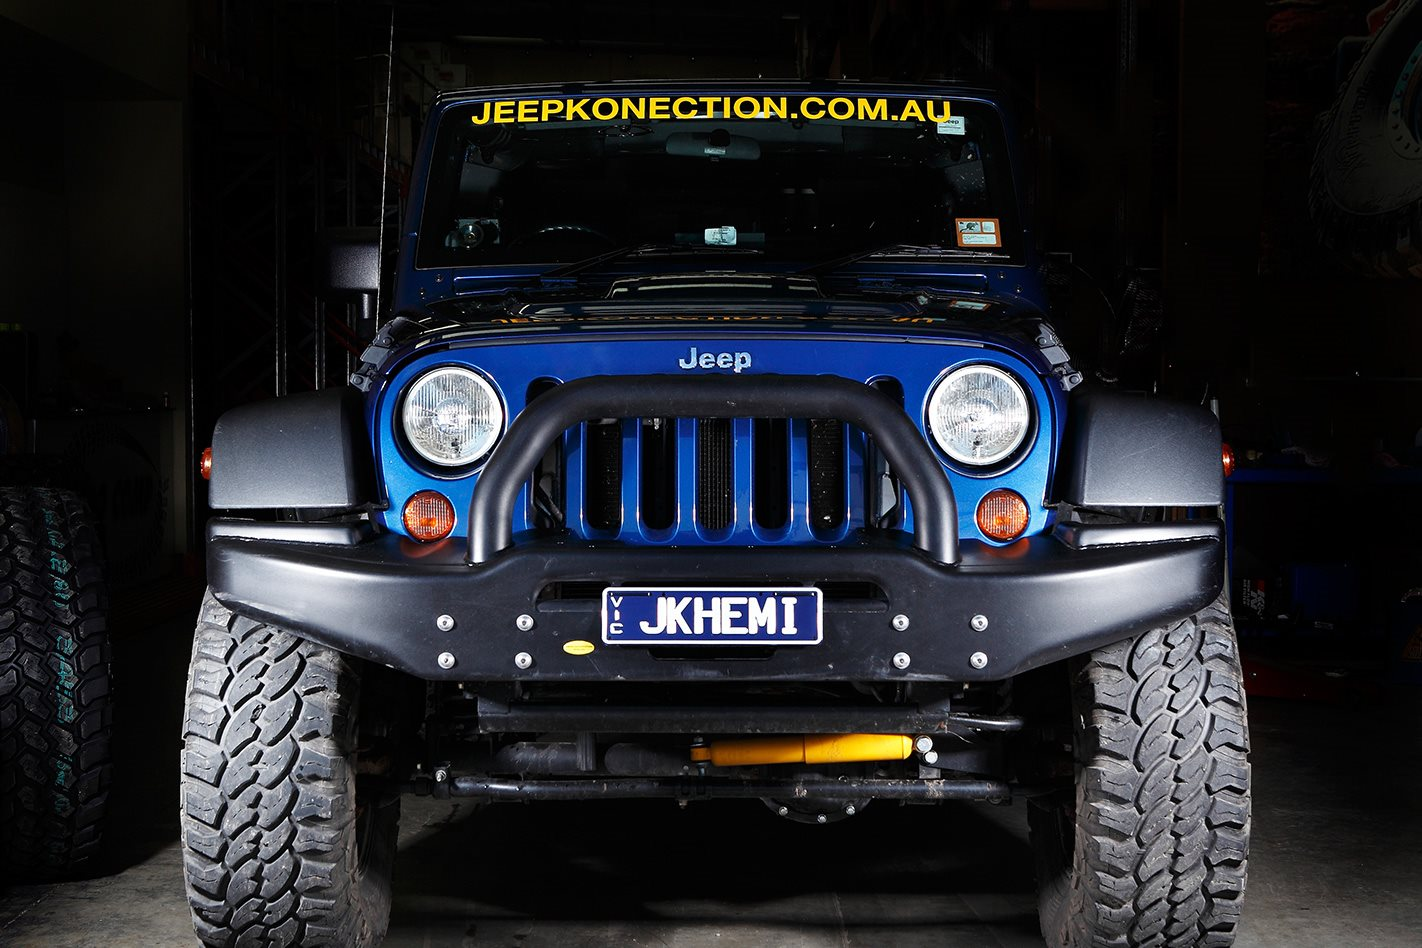 JeepKonection-Jeep-Wrangler-front.jpg